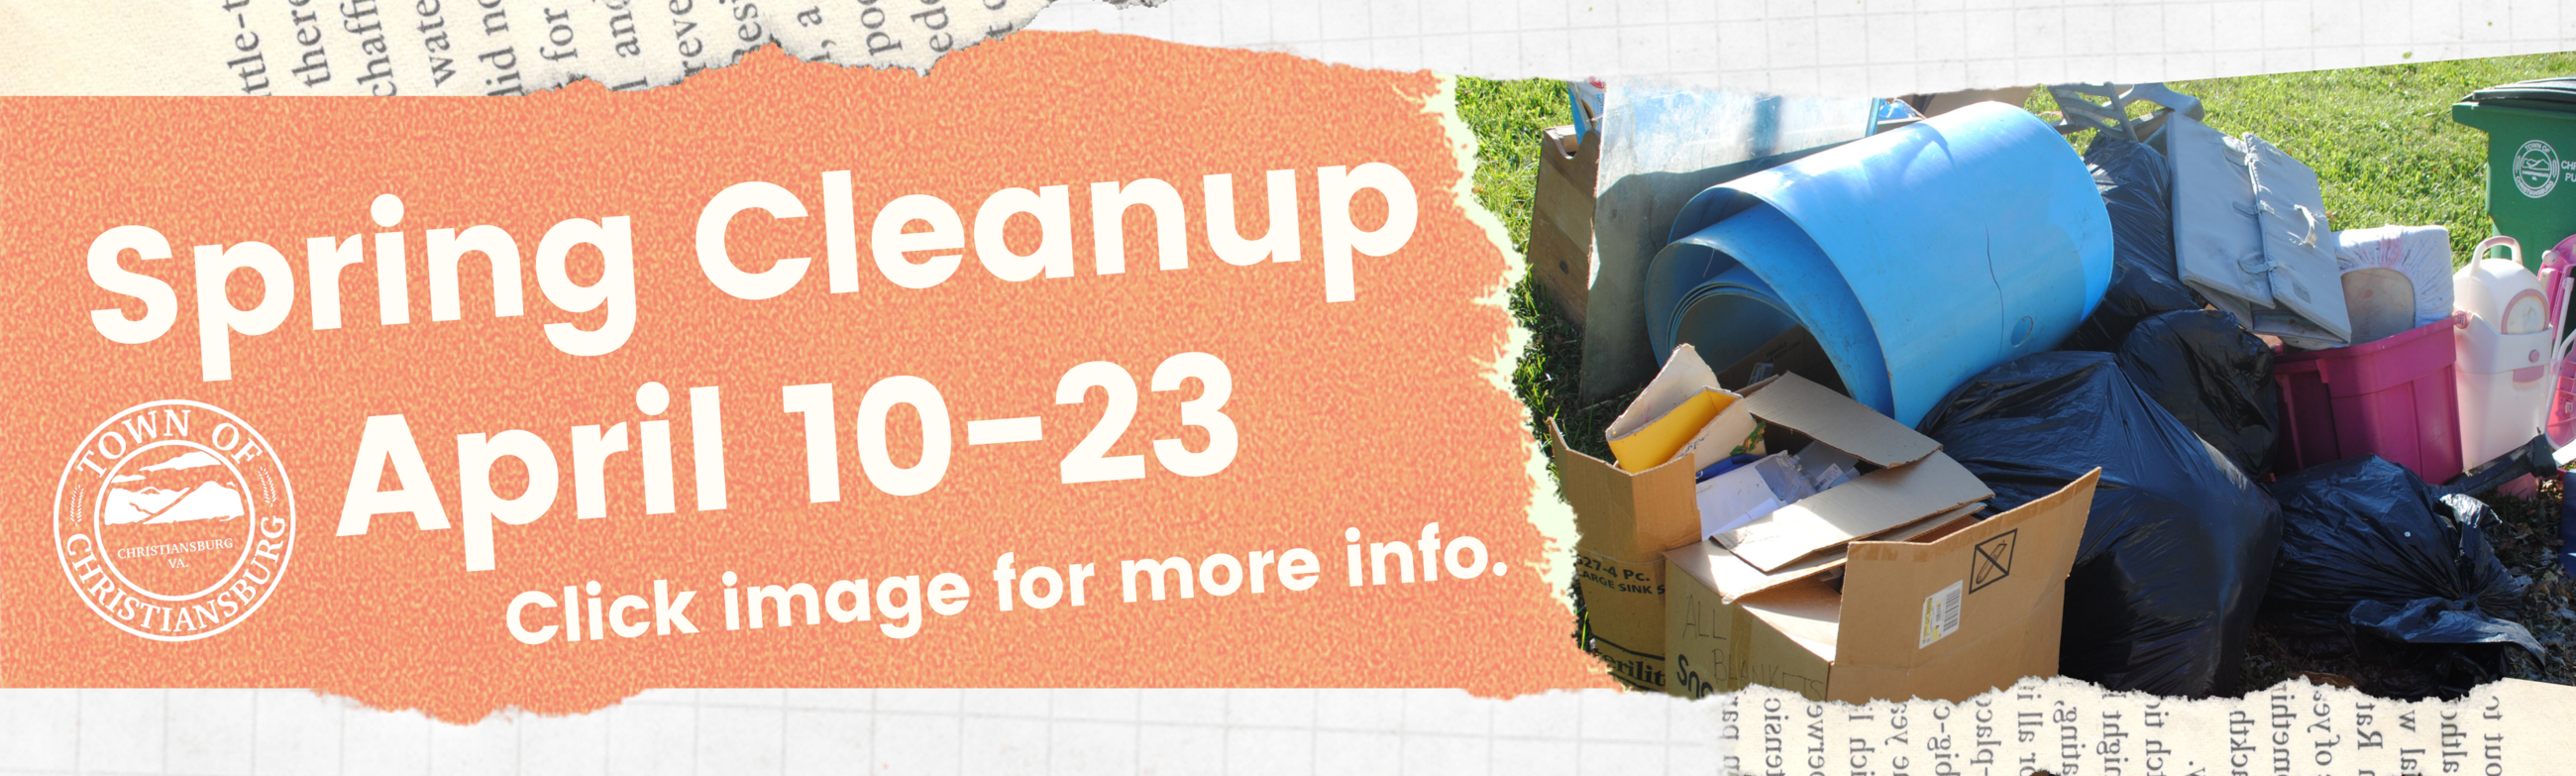 Spring Cleanup will run from April 10-23. Click image for more details.